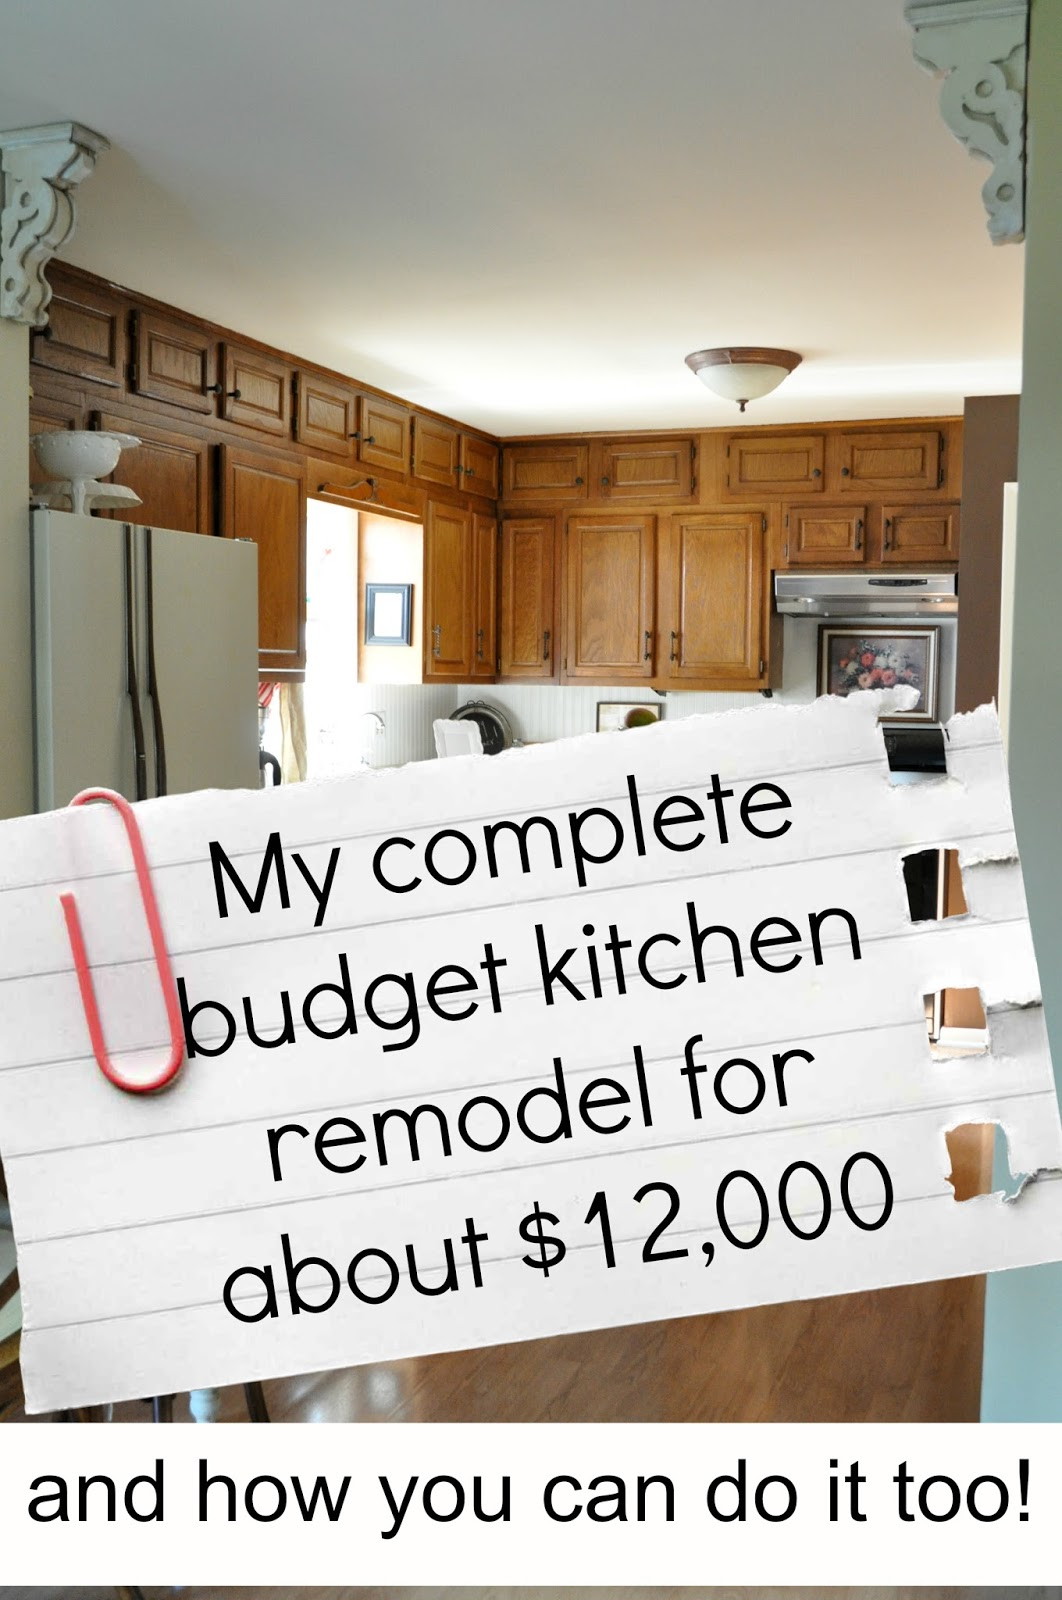 my complete kitchen remodel story for about $12,000. - jennifer rizzo